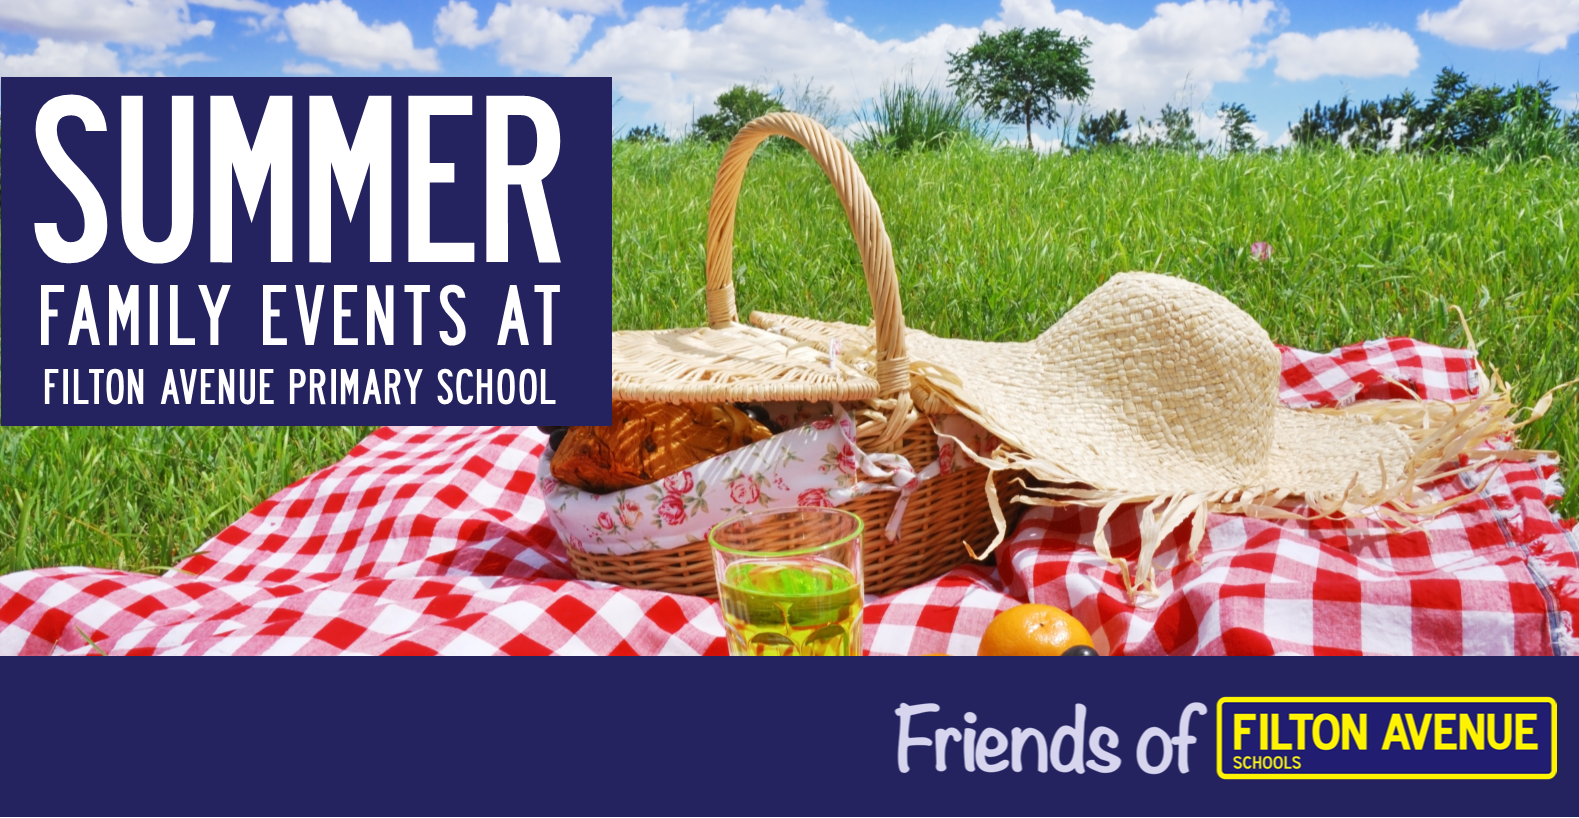 Summer Events Banner - Summer Family Events